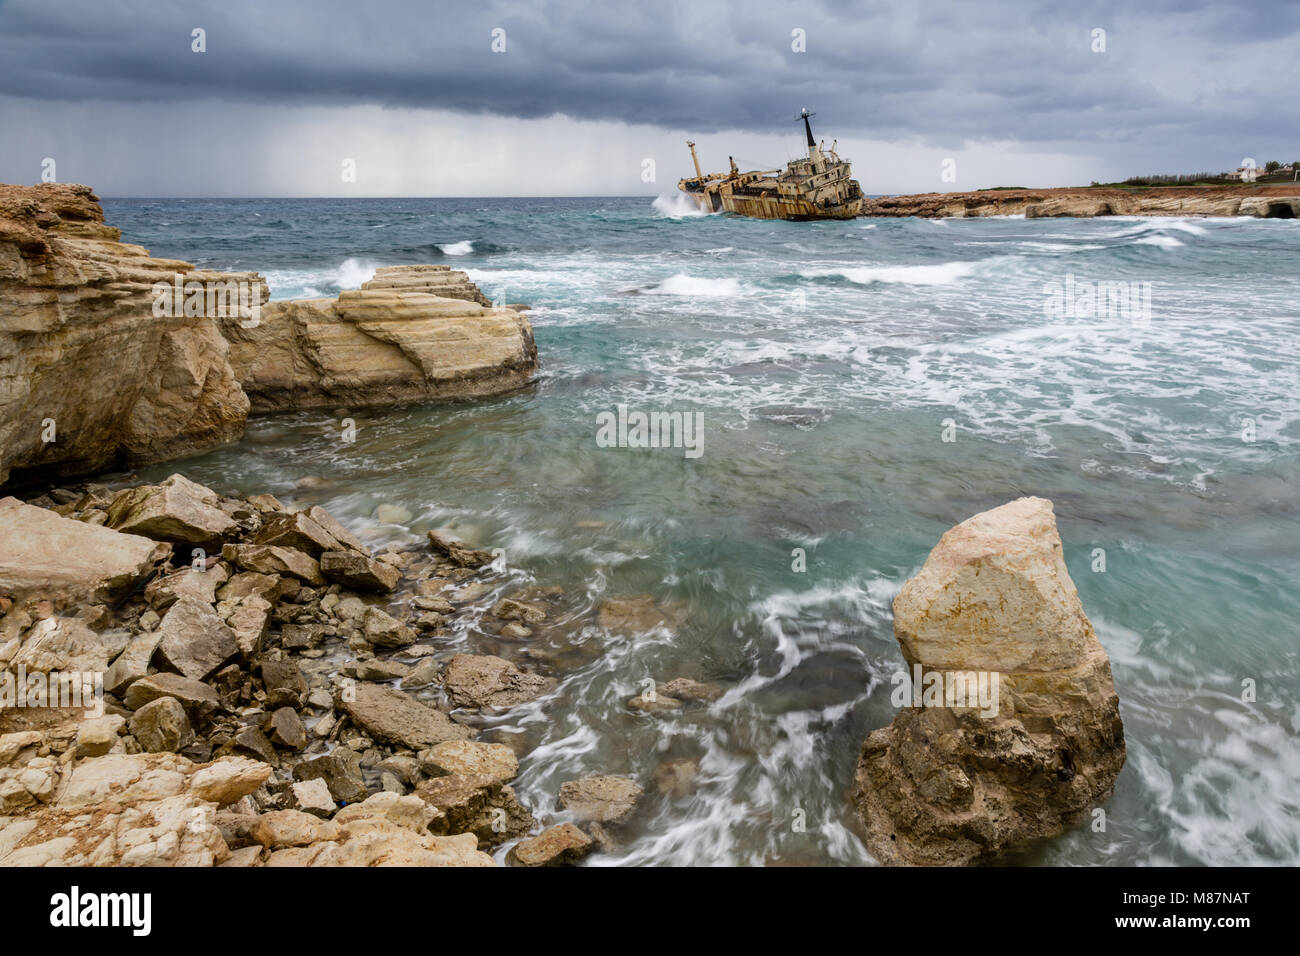 Shipwreck of Edro III at Seacaves, an area of outstanding natural beauty near Coral Bay/Peiya, Cyprus. - Stock Image